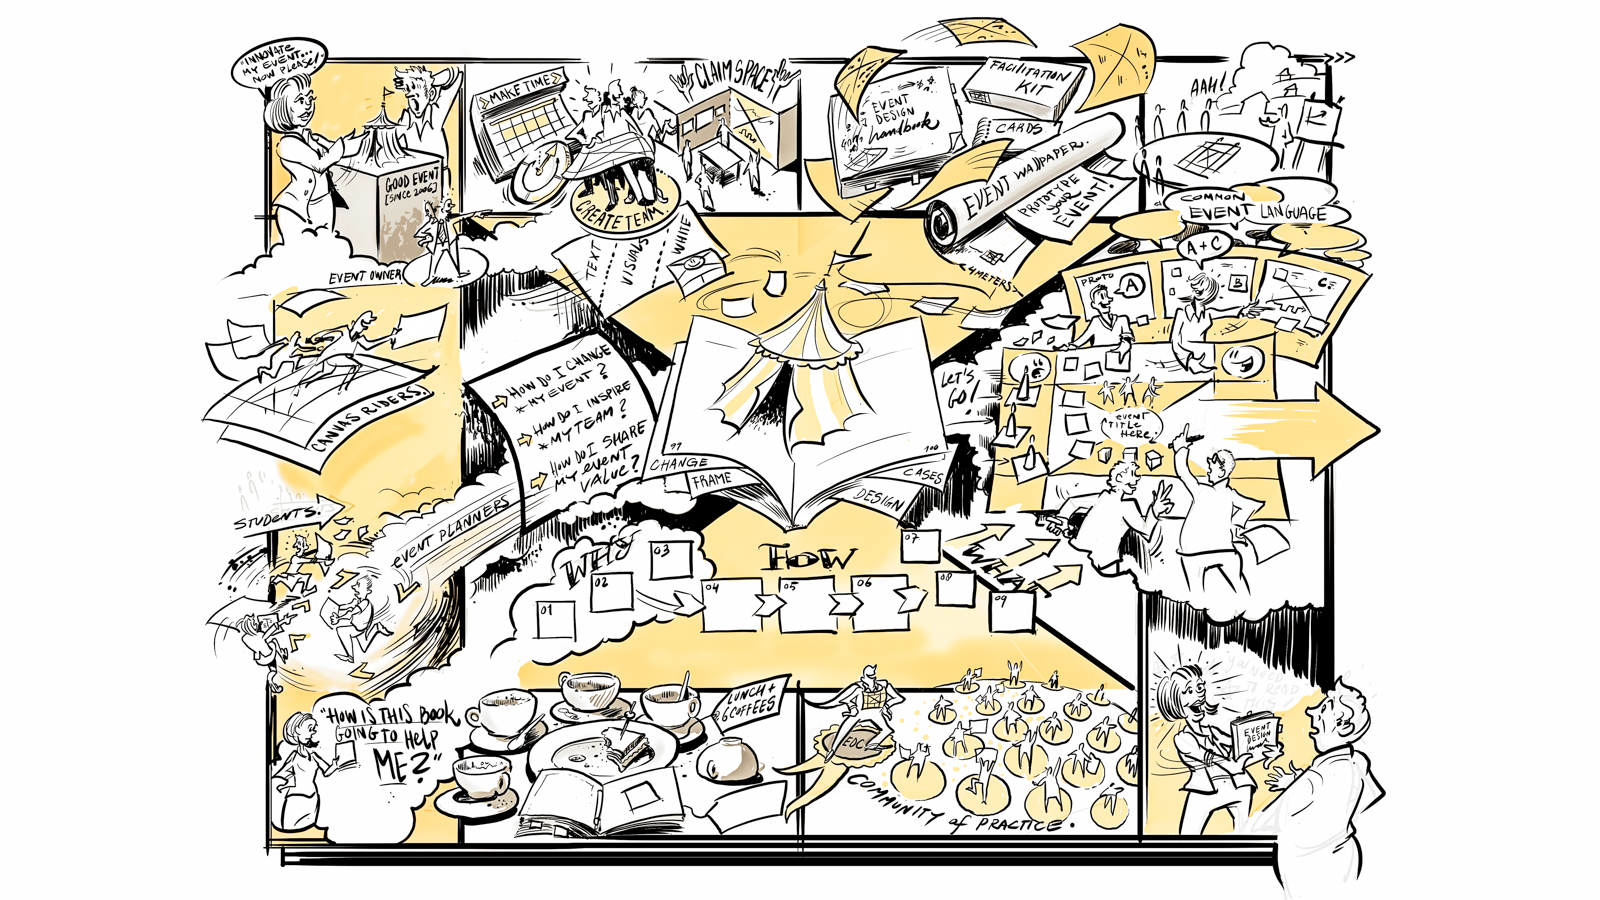 The Event Canvas illustrated. Picture from the  Event Design Collective website